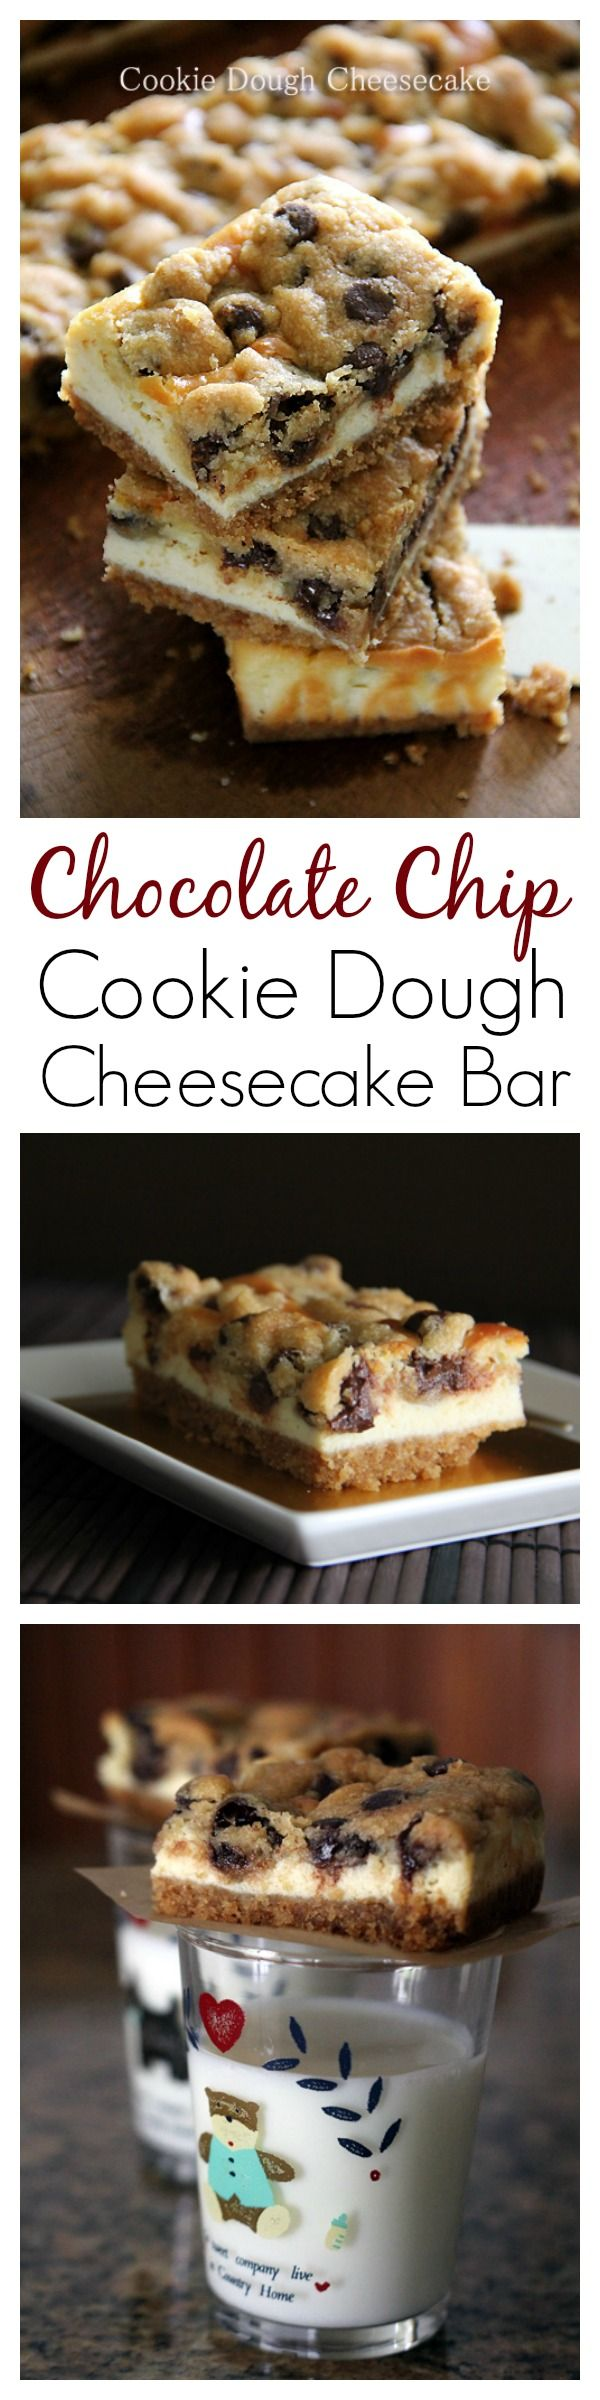 Chocolate Chip Cookie Dough Cheesecake Bar recipe, the BEST cheesecake bar EVER | Dessert recipes like this make you want to lick the screen!